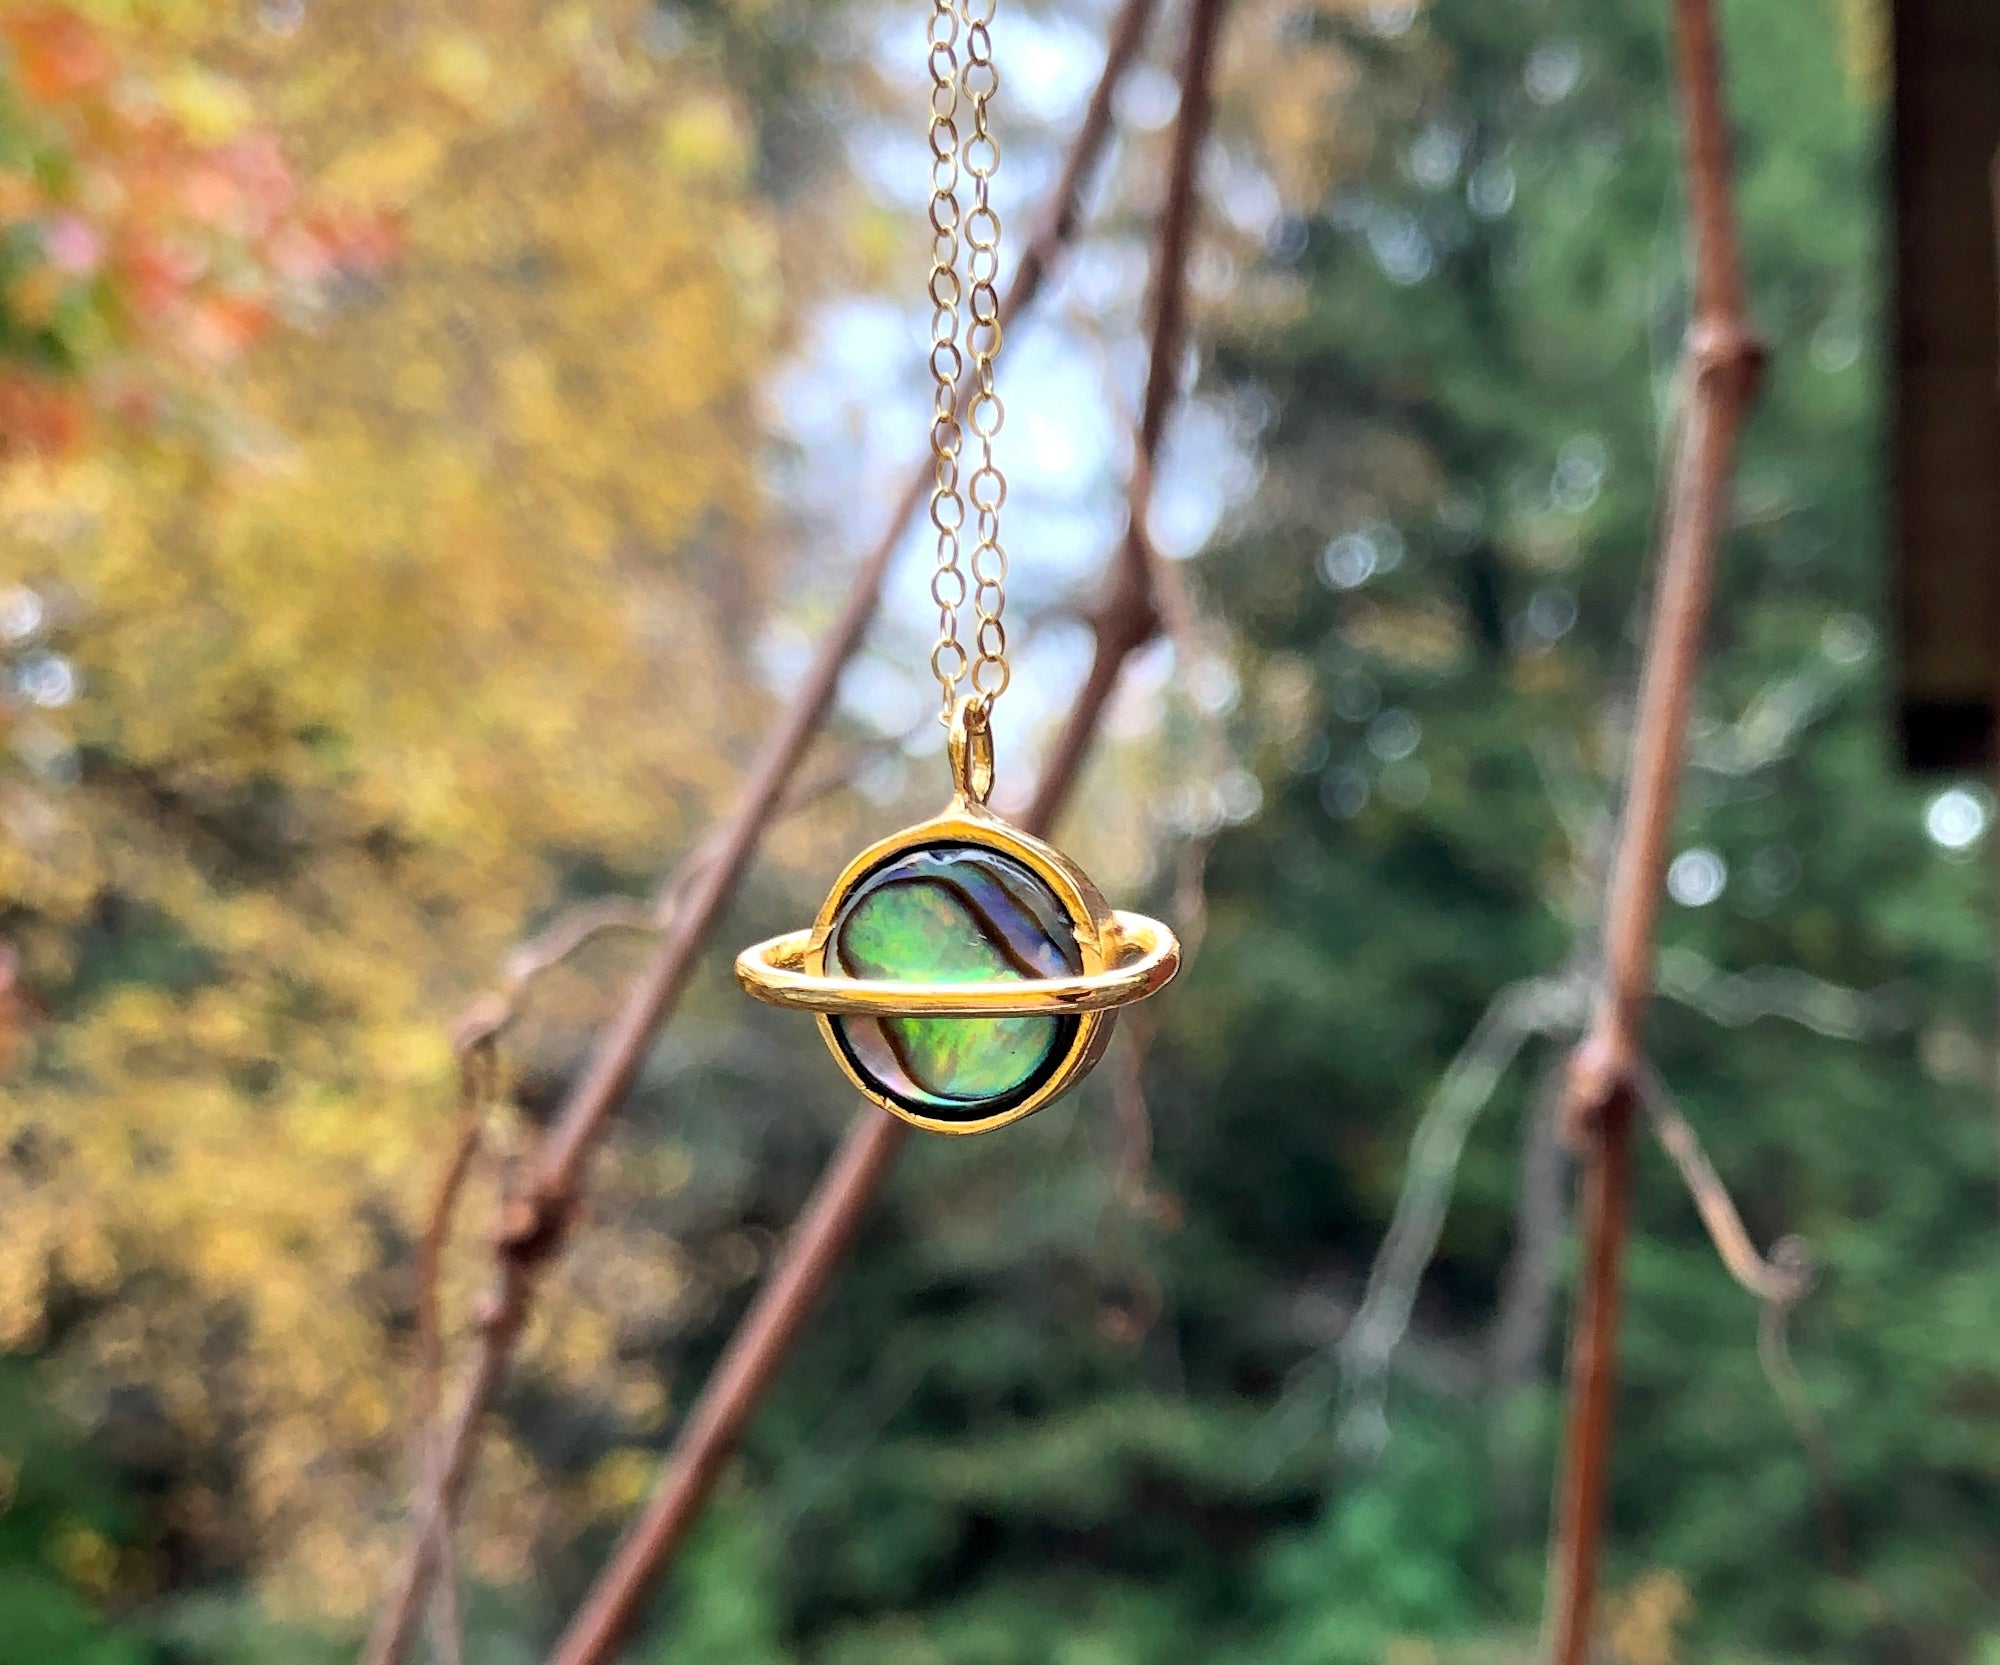 Saturn Pendant in Abalone